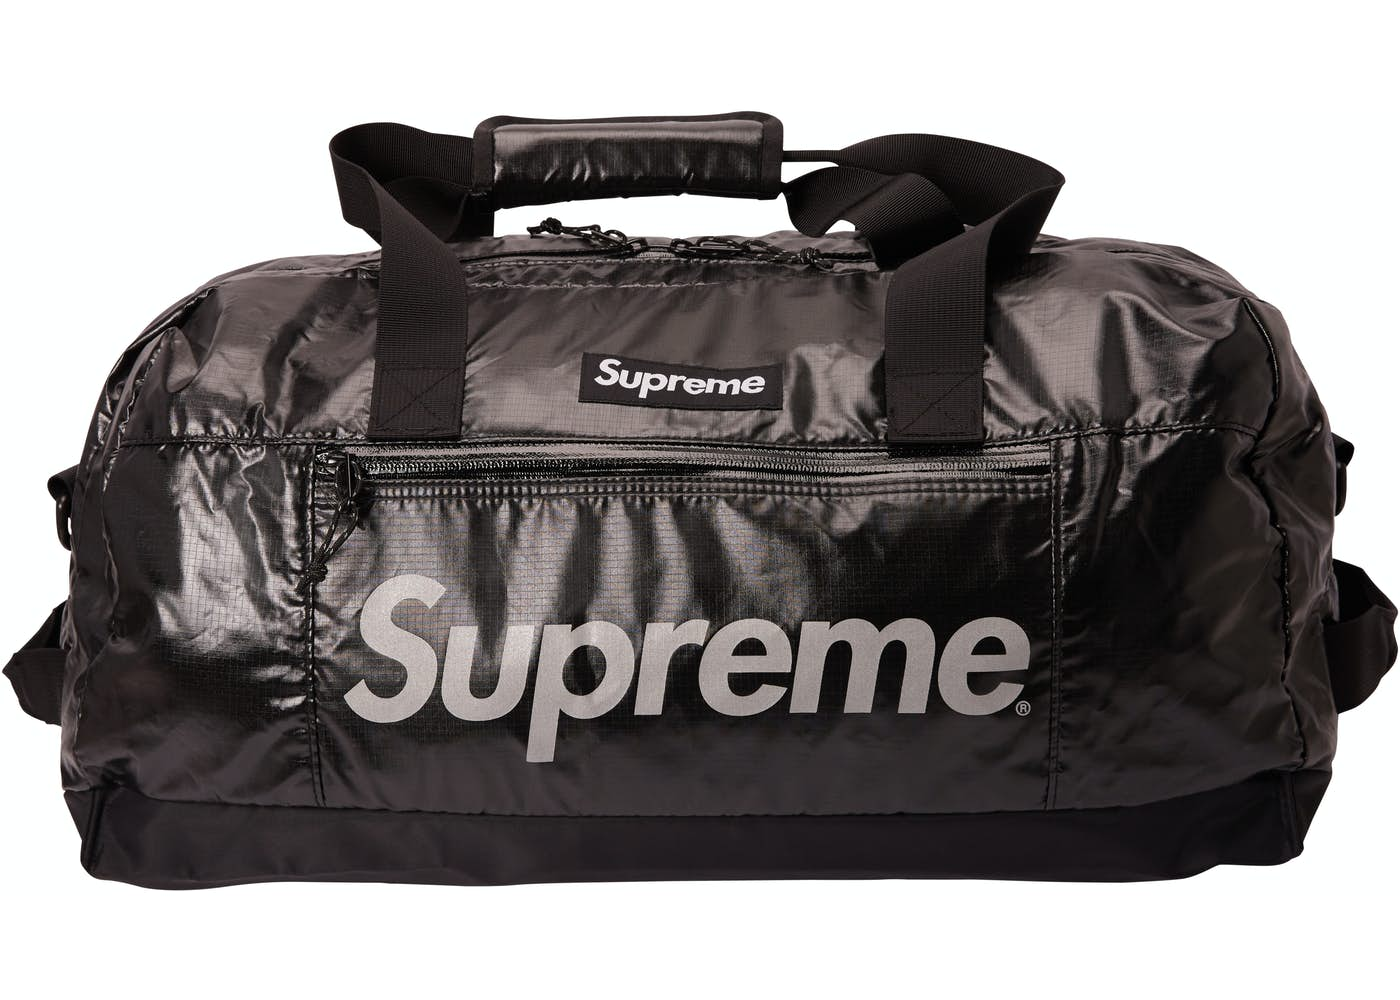 Image result for DUFFLE bag